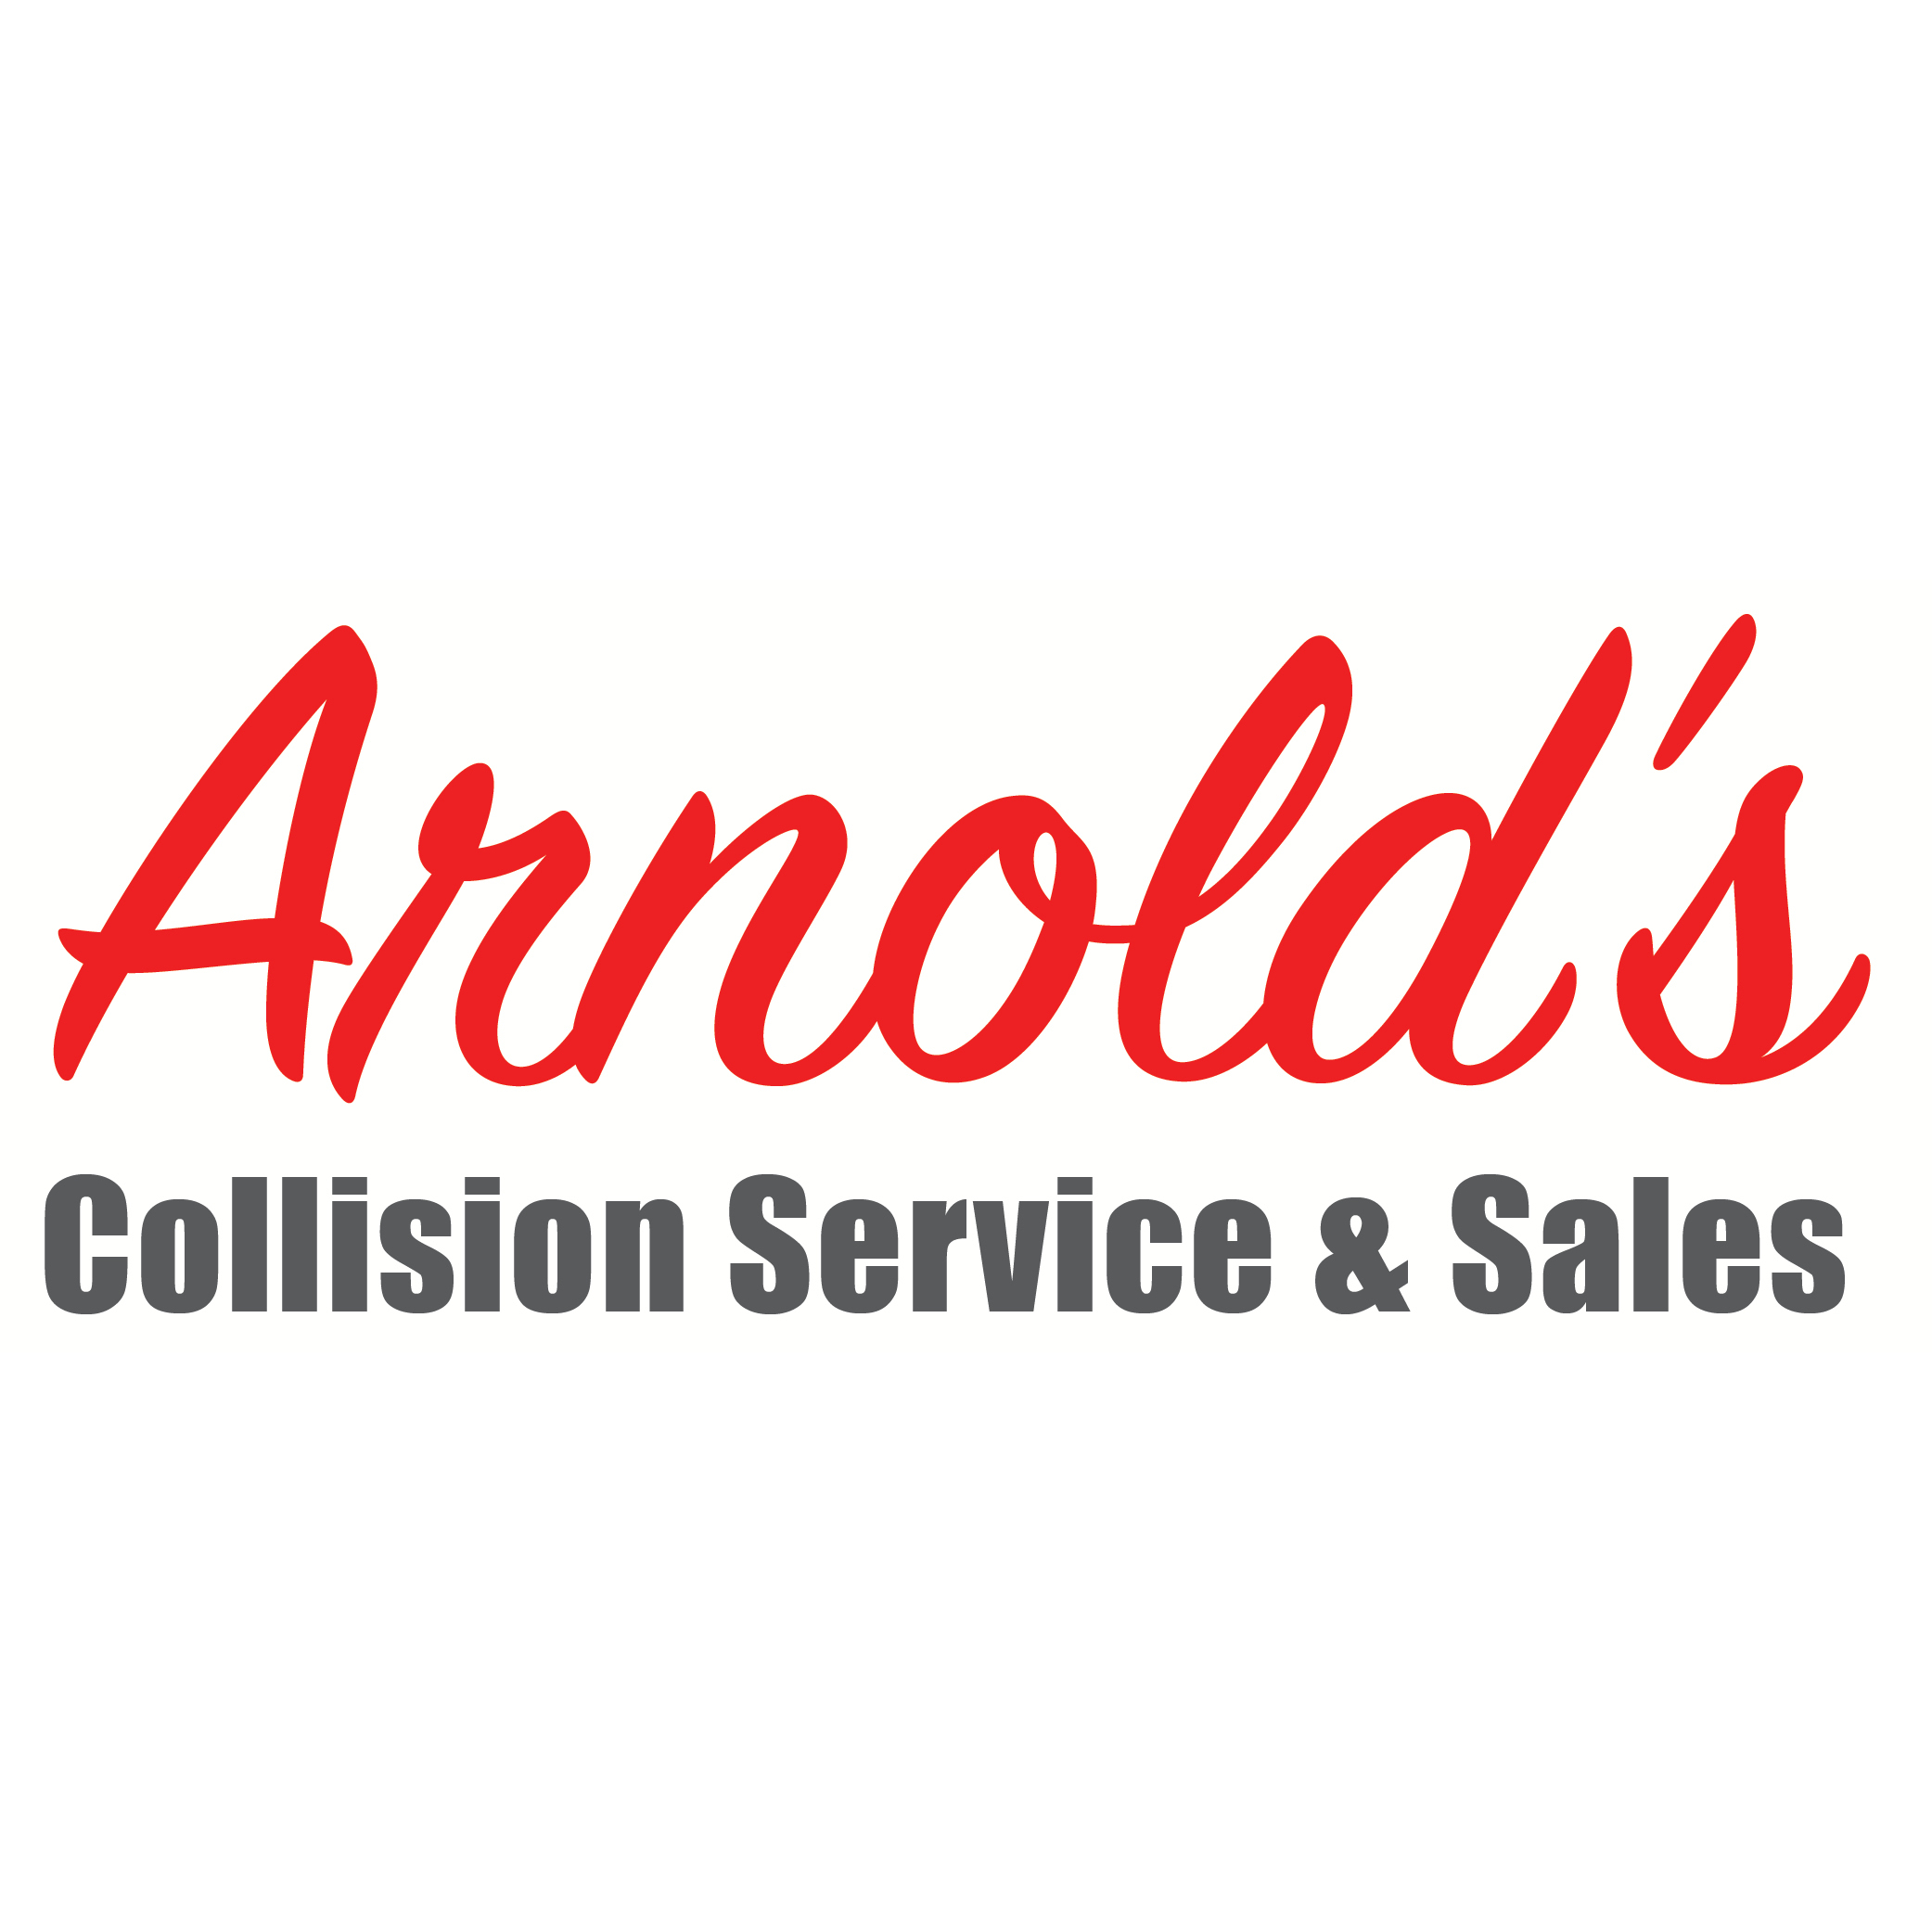 Arnold's Collision Service & Sales - Alliance, OH - Auto Body Repair & Painting